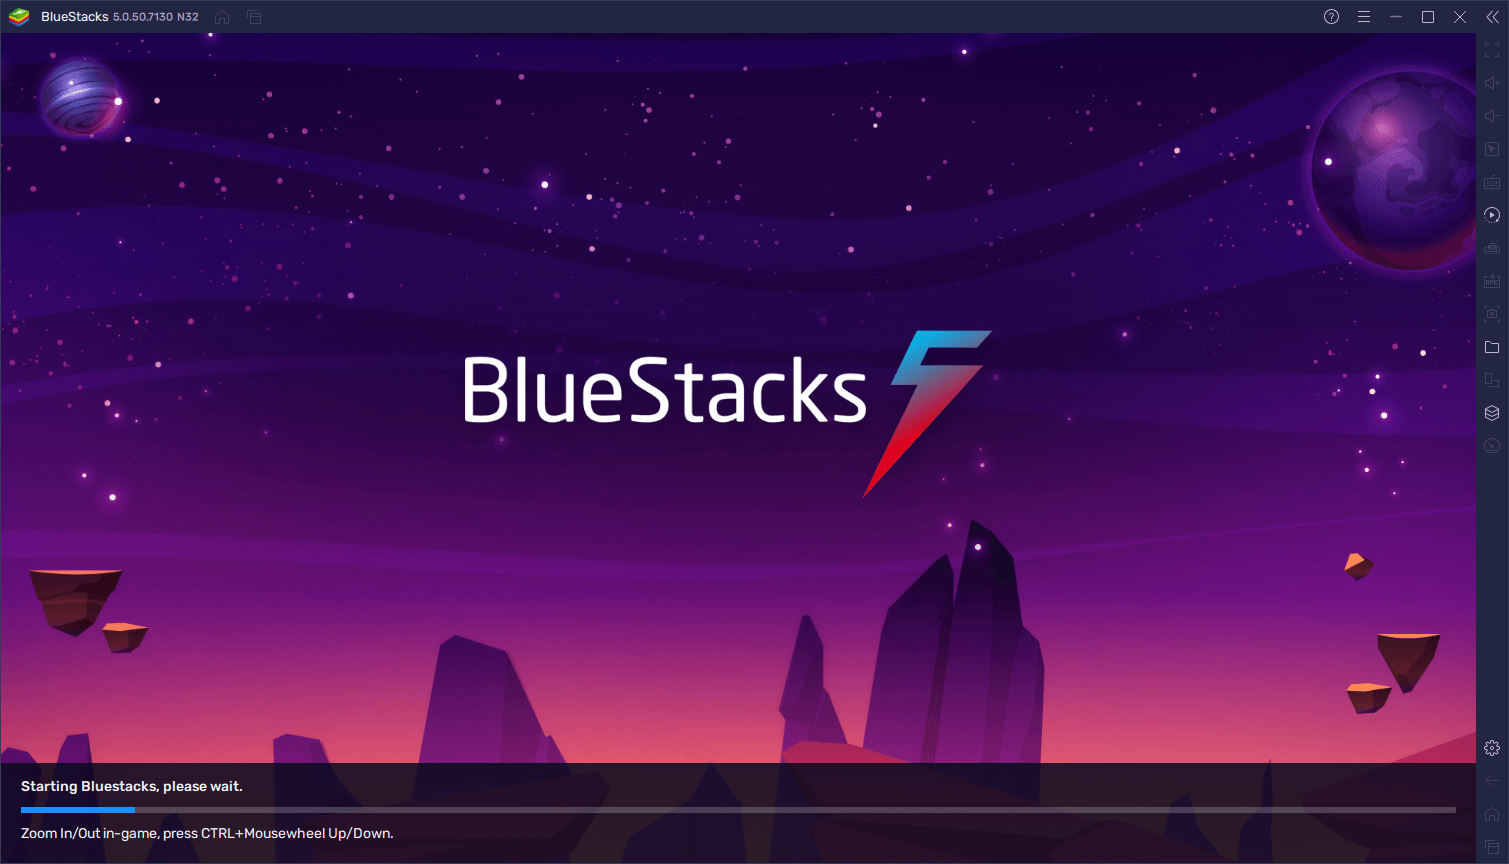 The BlueStacks 5 Trim Memory Feature Guarantees Lag-Free Gaming With the Lowest Possible RAM Usage